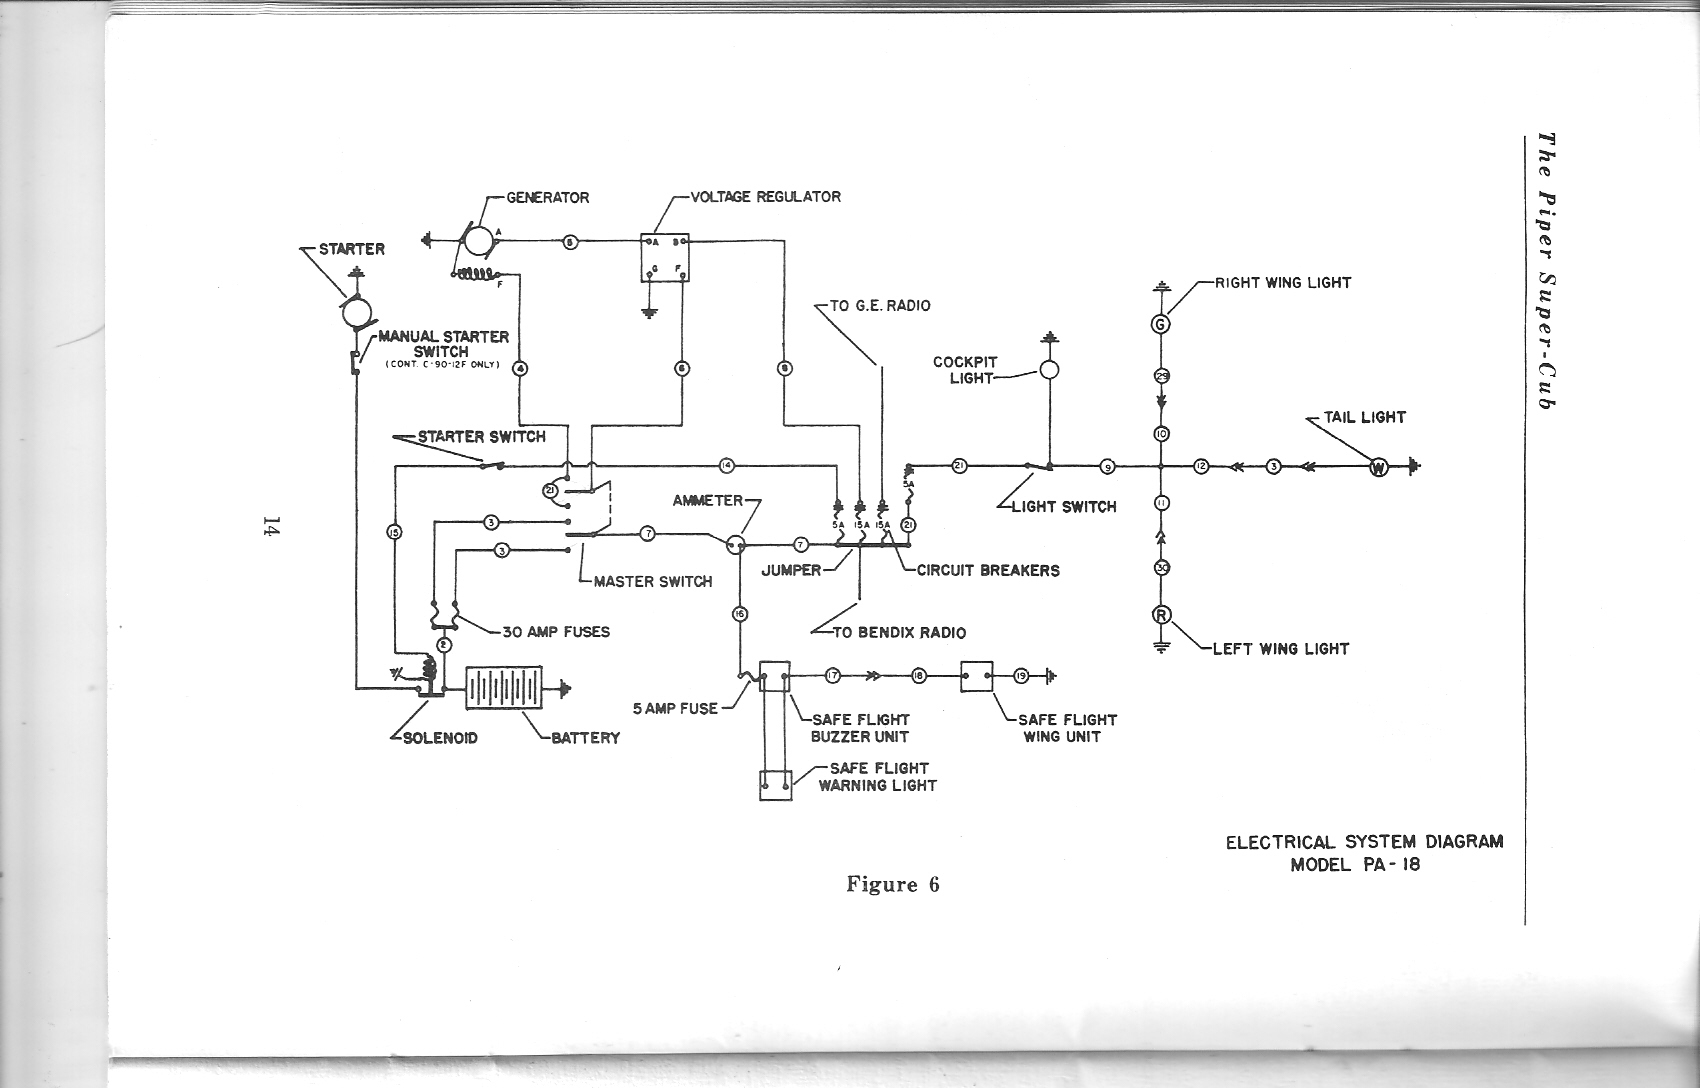 wiring diagram for boiler system wiring diagram for pa system